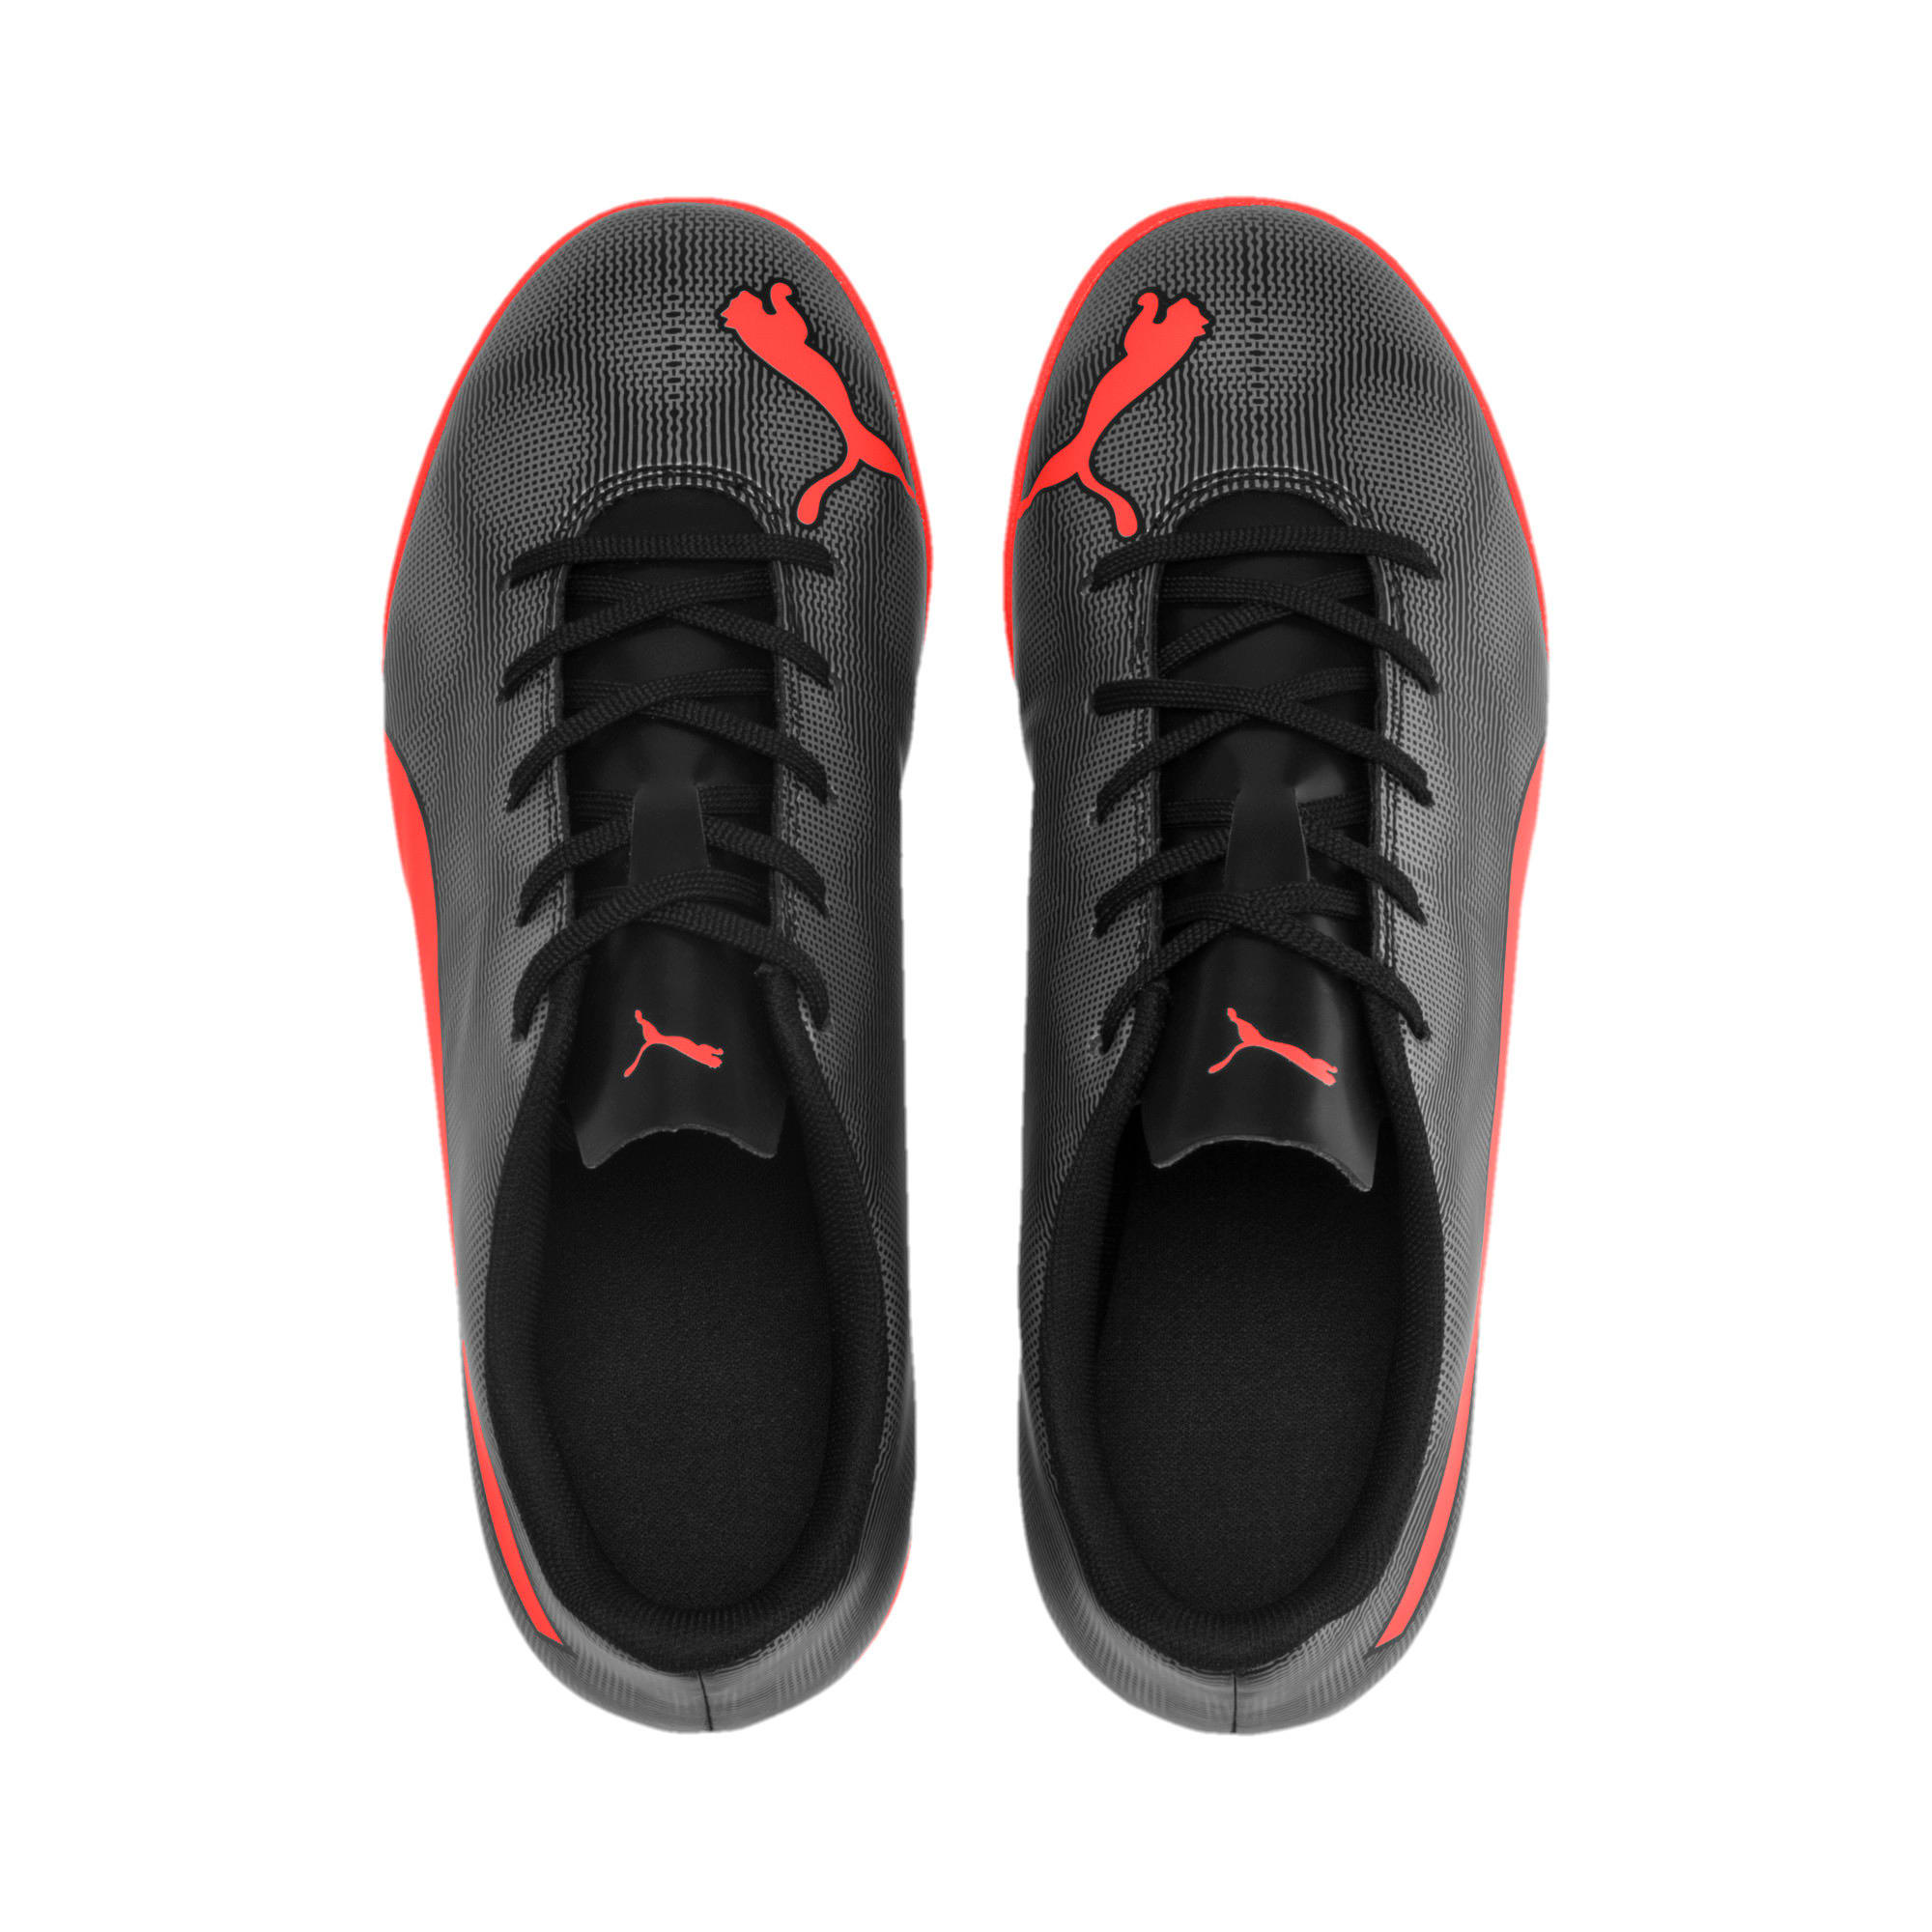 Thumbnail 6 of Rapido IT Youth Football Boots, Black-Nrgy Red-Aged Silver, medium-IND